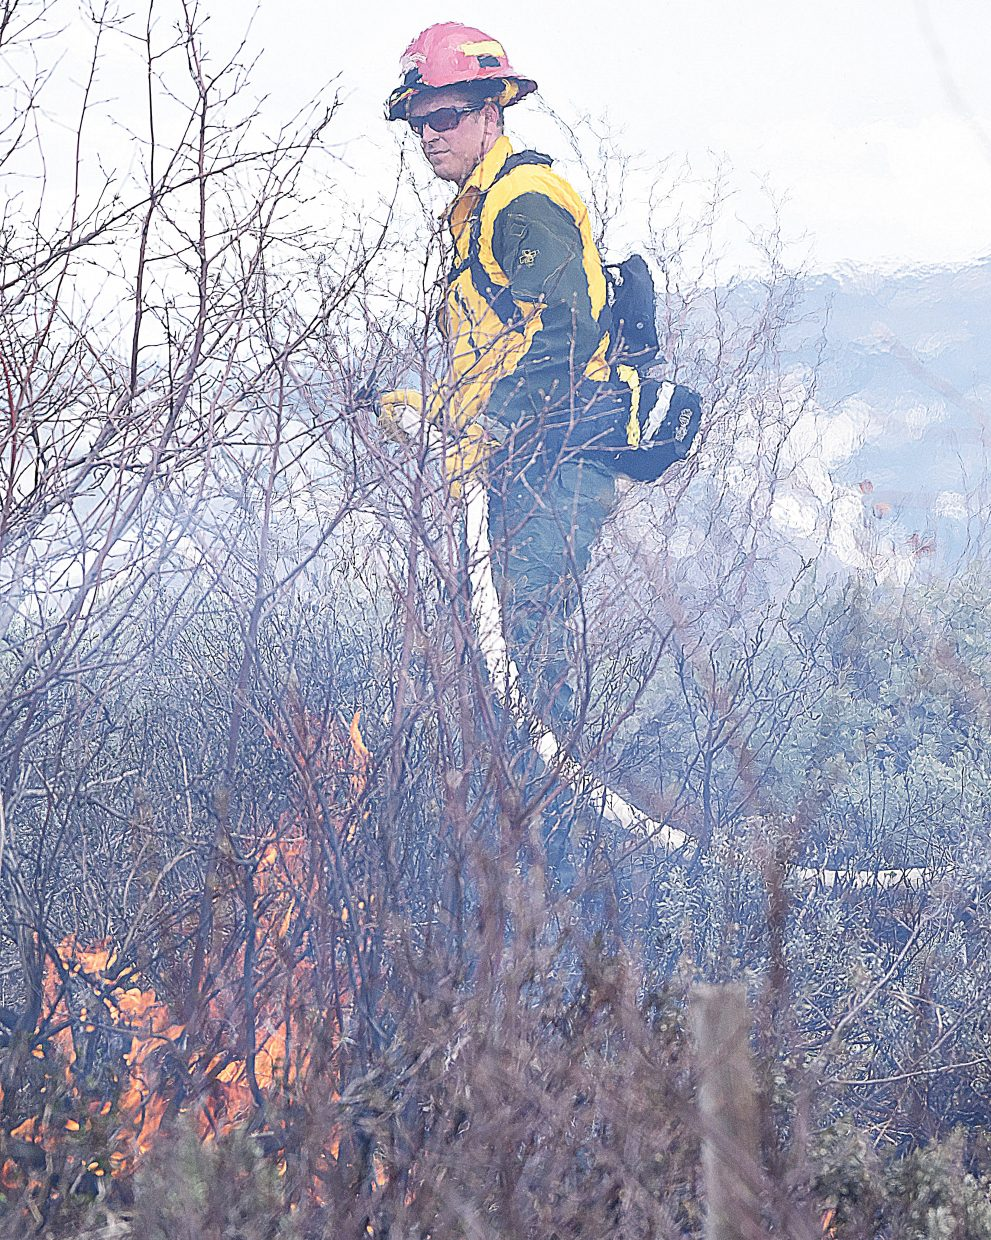 Nick Kuchulis, with Steamboat Springs Fire Rescue, cleans up some hot spots after a controlled burn got out of control on Thorpe Mountain Thursday afternoon. Crews from Steamboat Springs and Oak Creek arrived in time to knock the fire down before it became a threat to several nearby homes in the area.